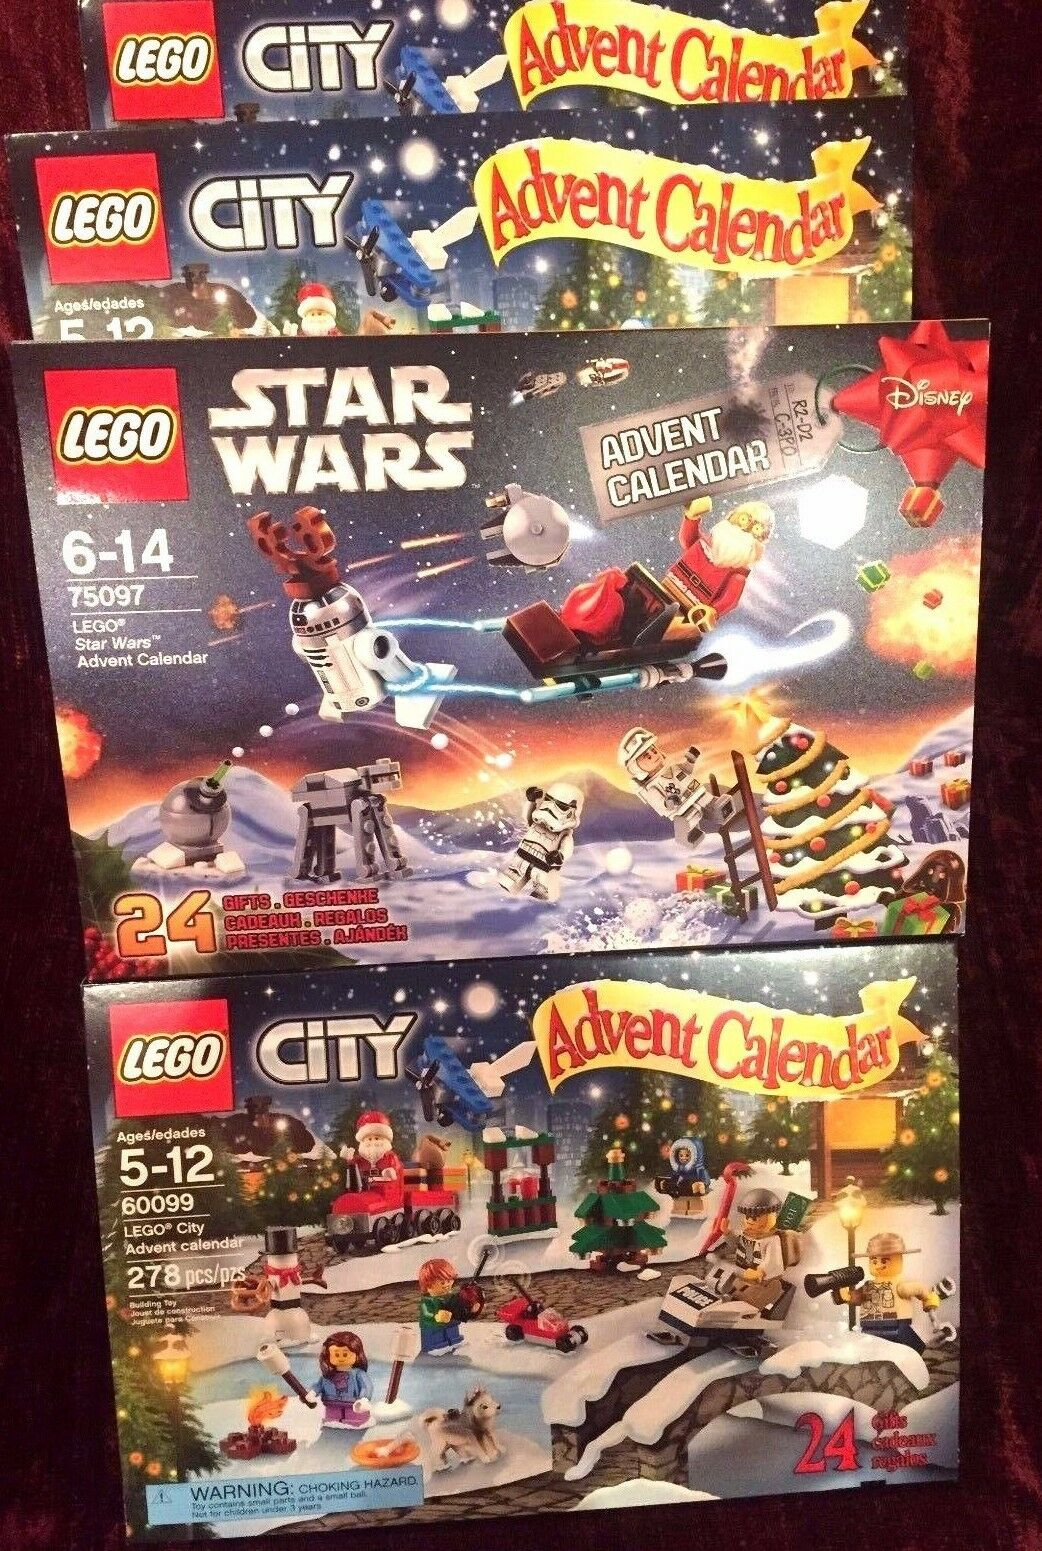 2015 LEGO Star Wars  75097  plus Lego City  60099  Advent Calendars Combo Deal